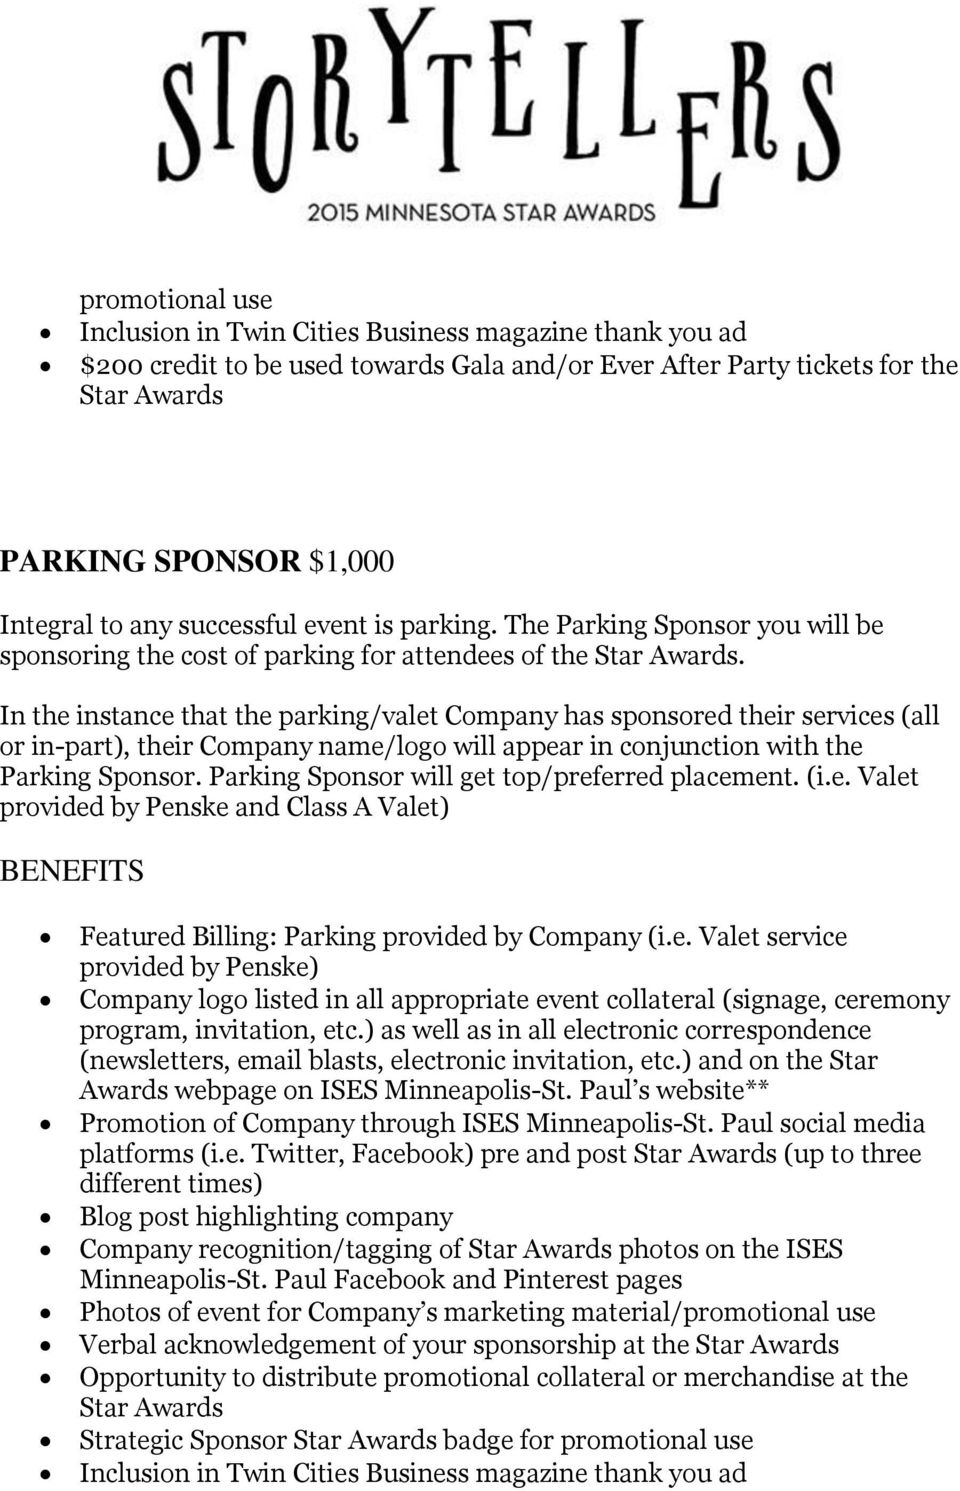 In the instance that the parking/valet Company has sponsored their services (all or in-part), their Company name/logo will appear in conjunction with the Parking Sponsor.